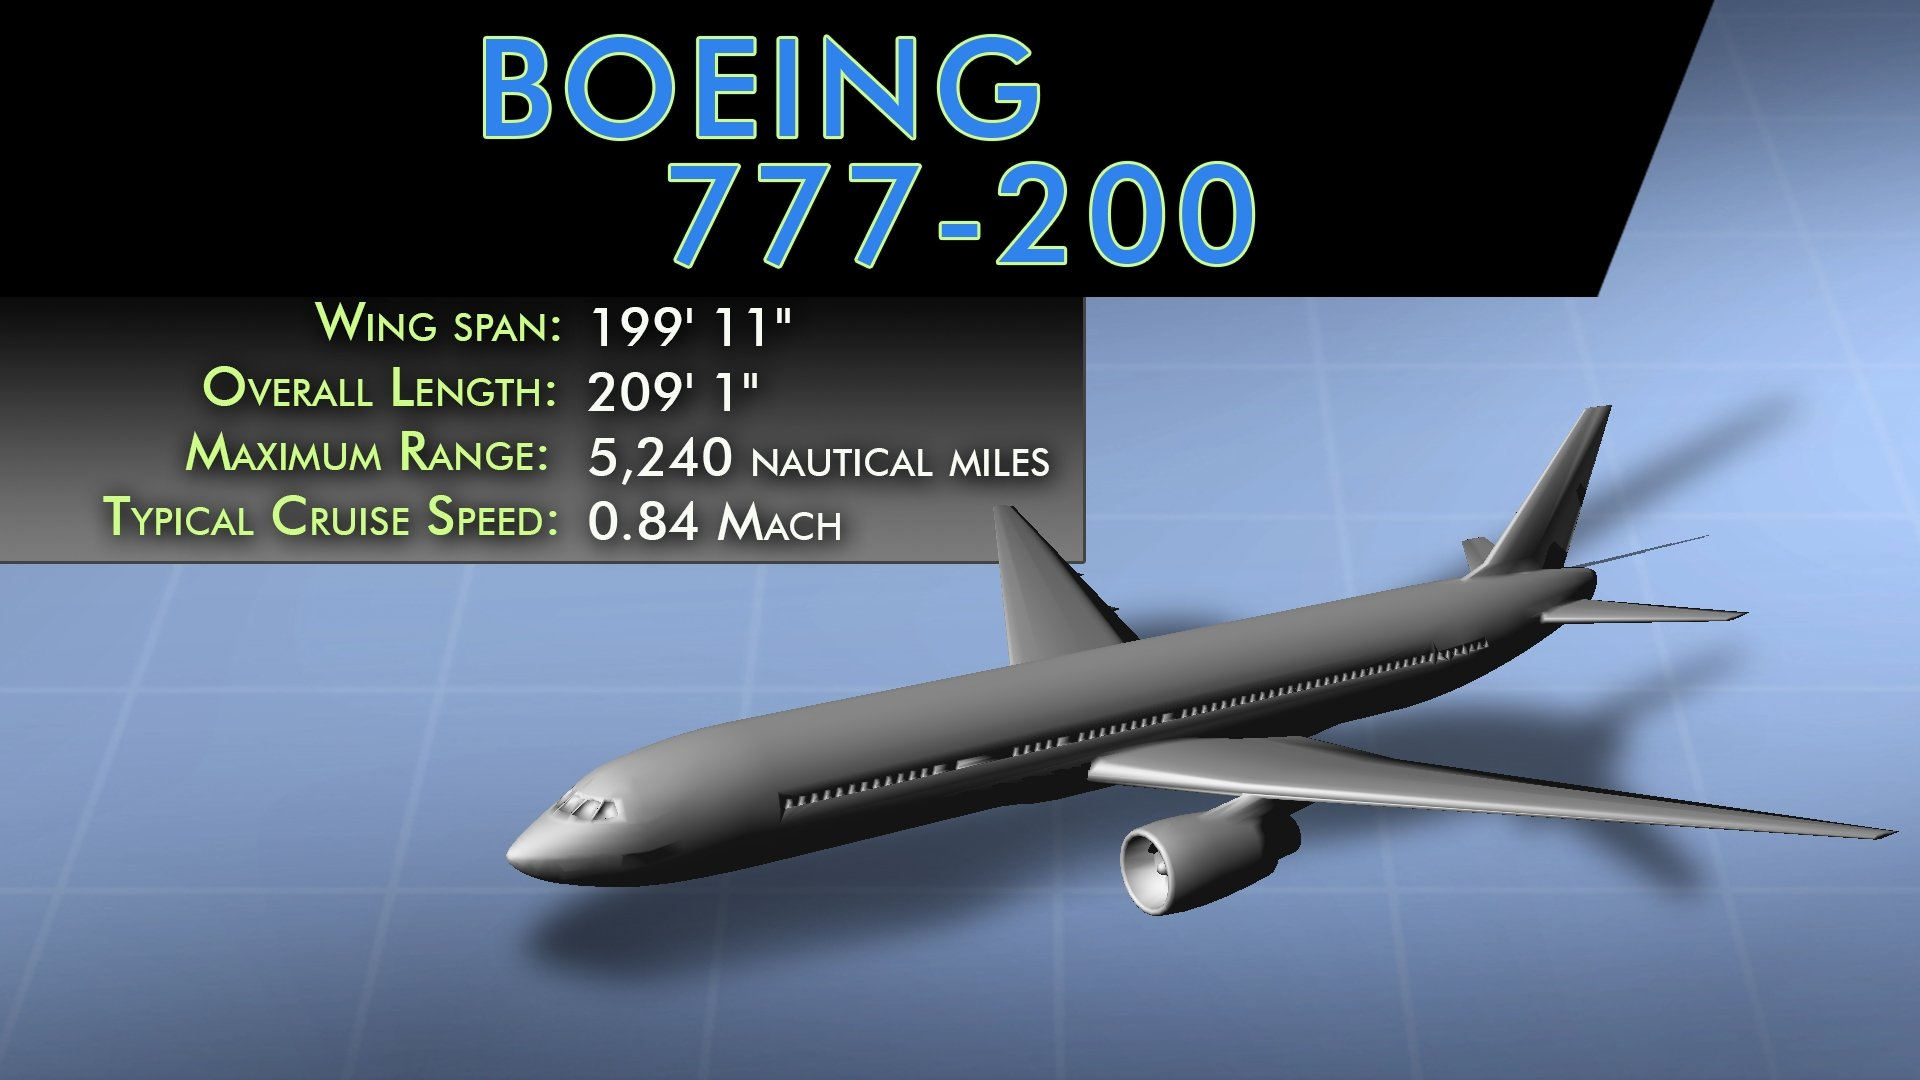 Boeing 777-200 Stats